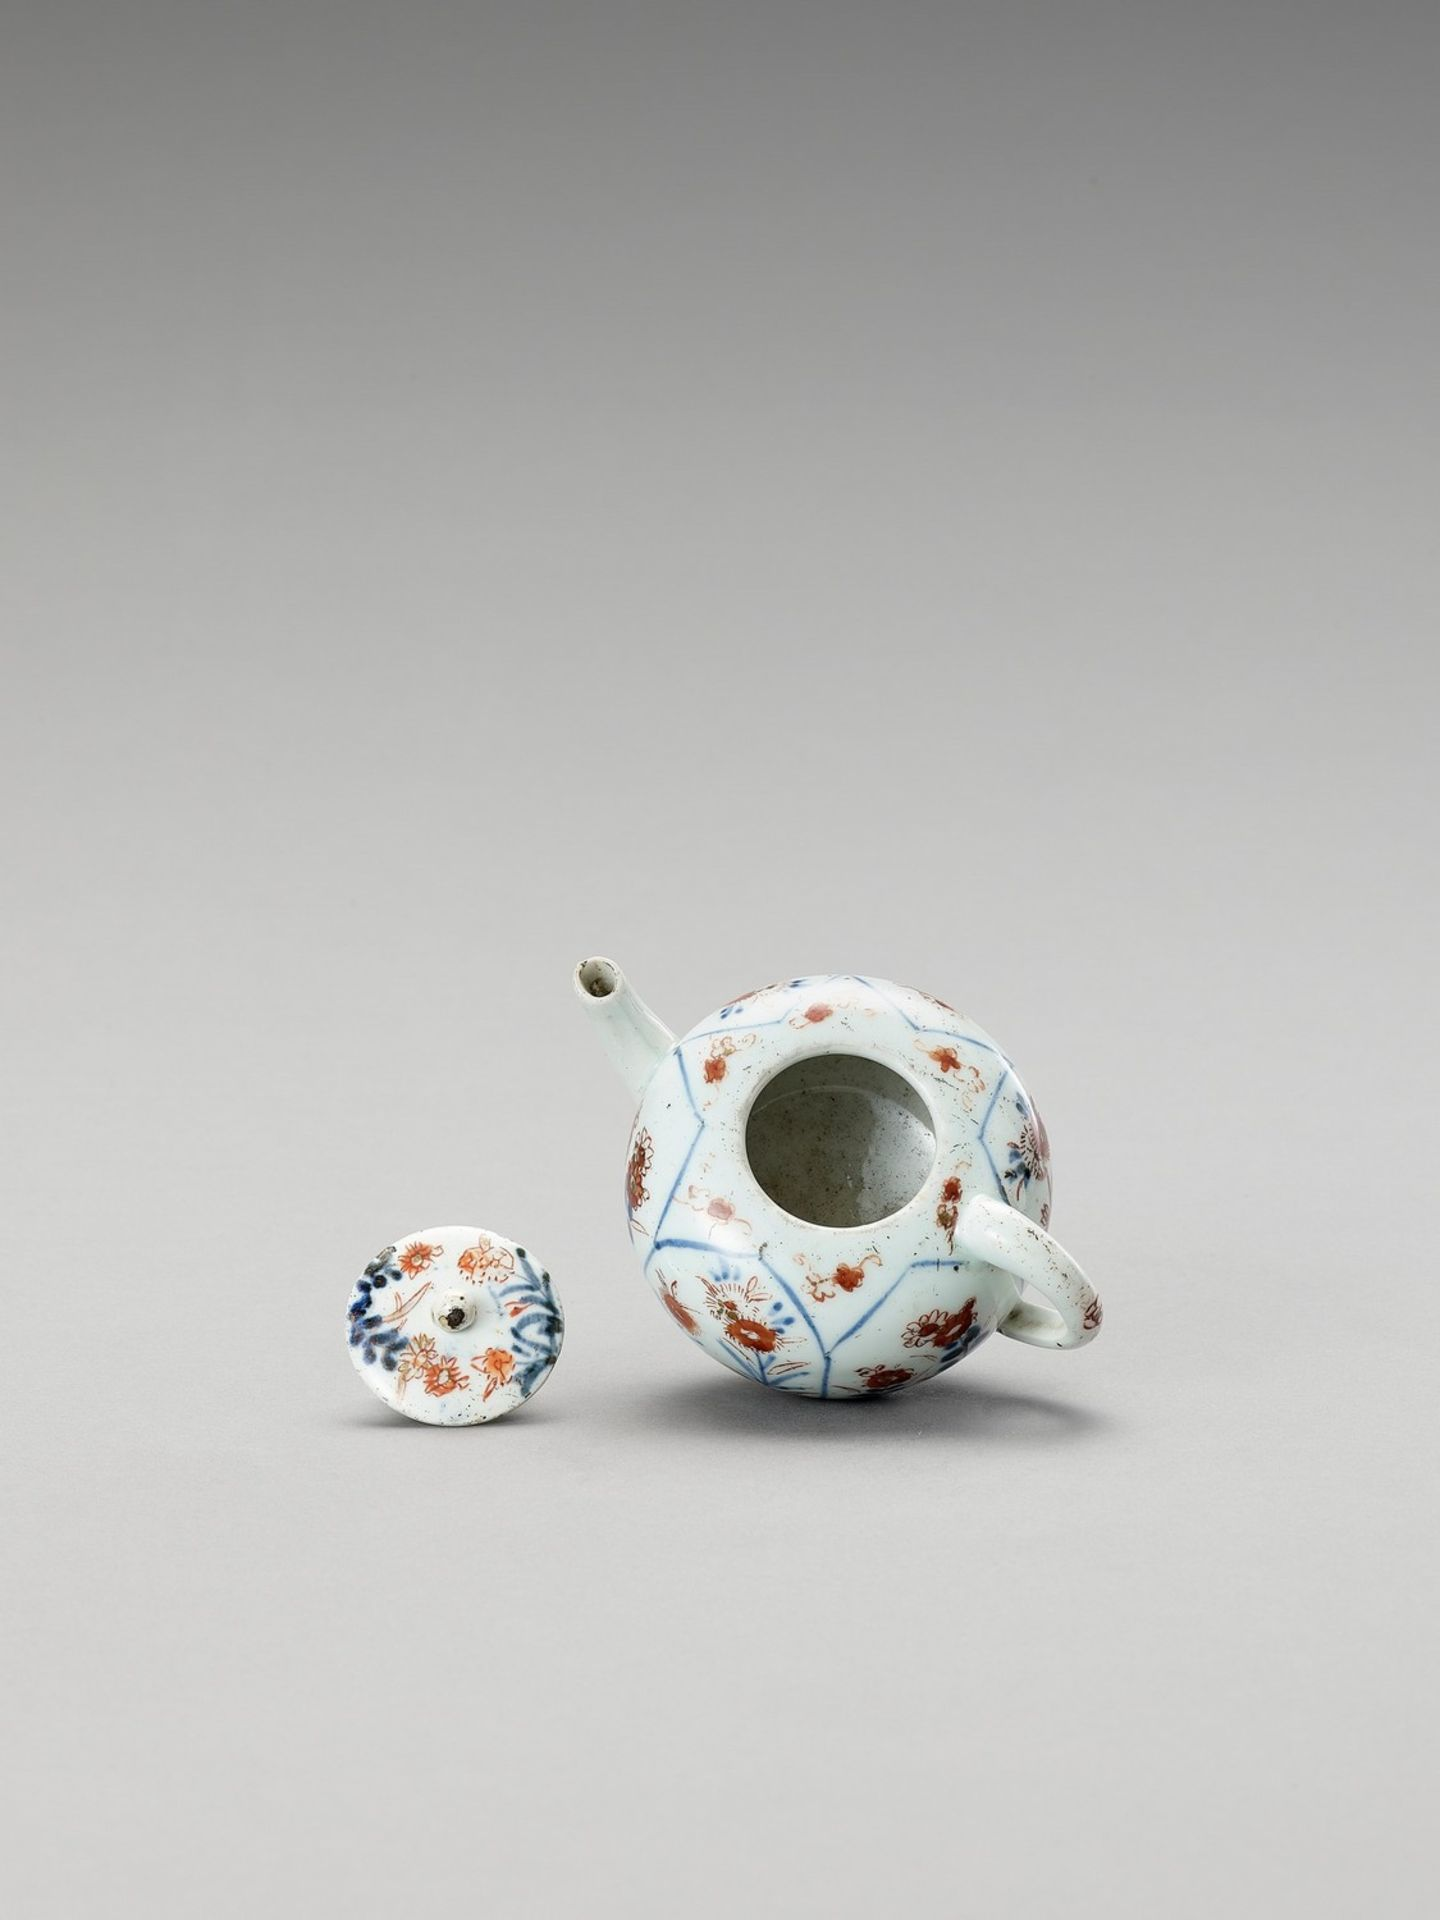 AN IMARI PORCELAIN TEAPOT WITH COVER - Image 6 of 6